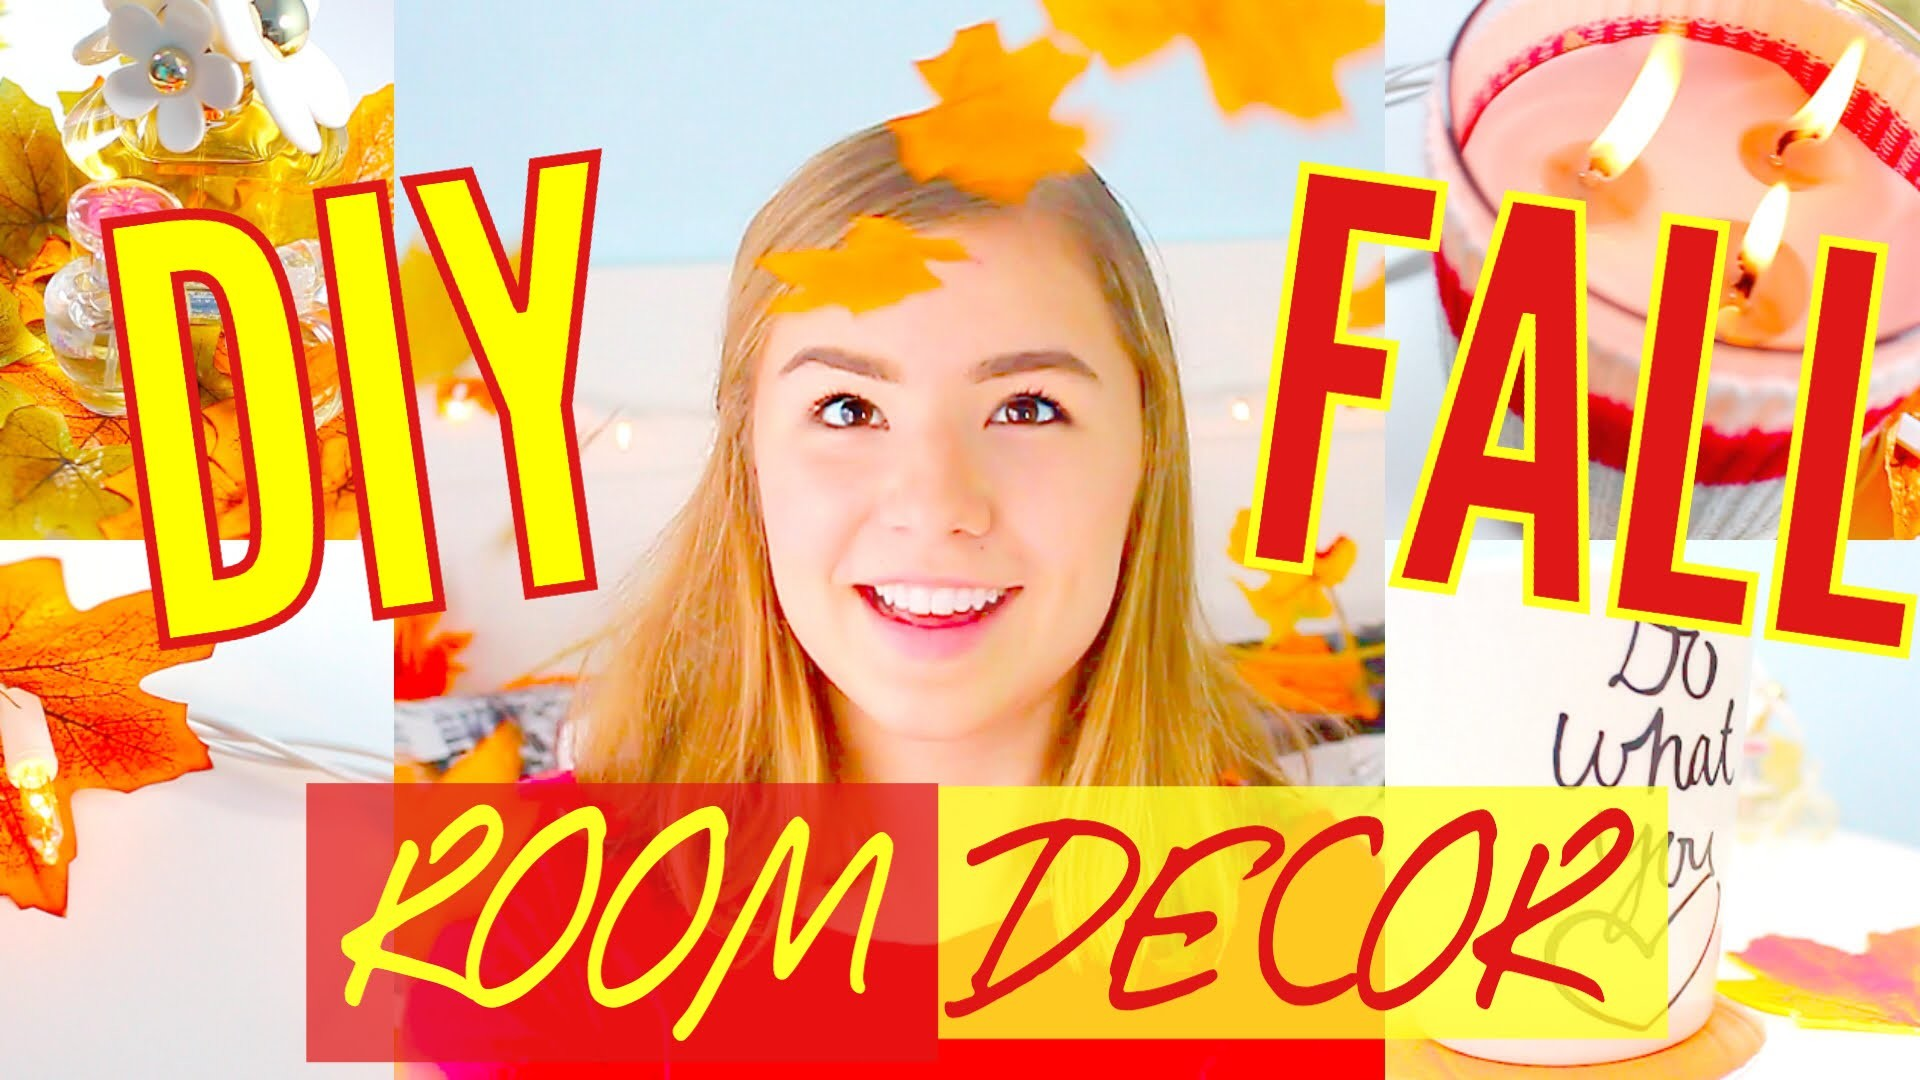 DIY Cozy Fall Room Decor for Cheap! Tumblr Inspired